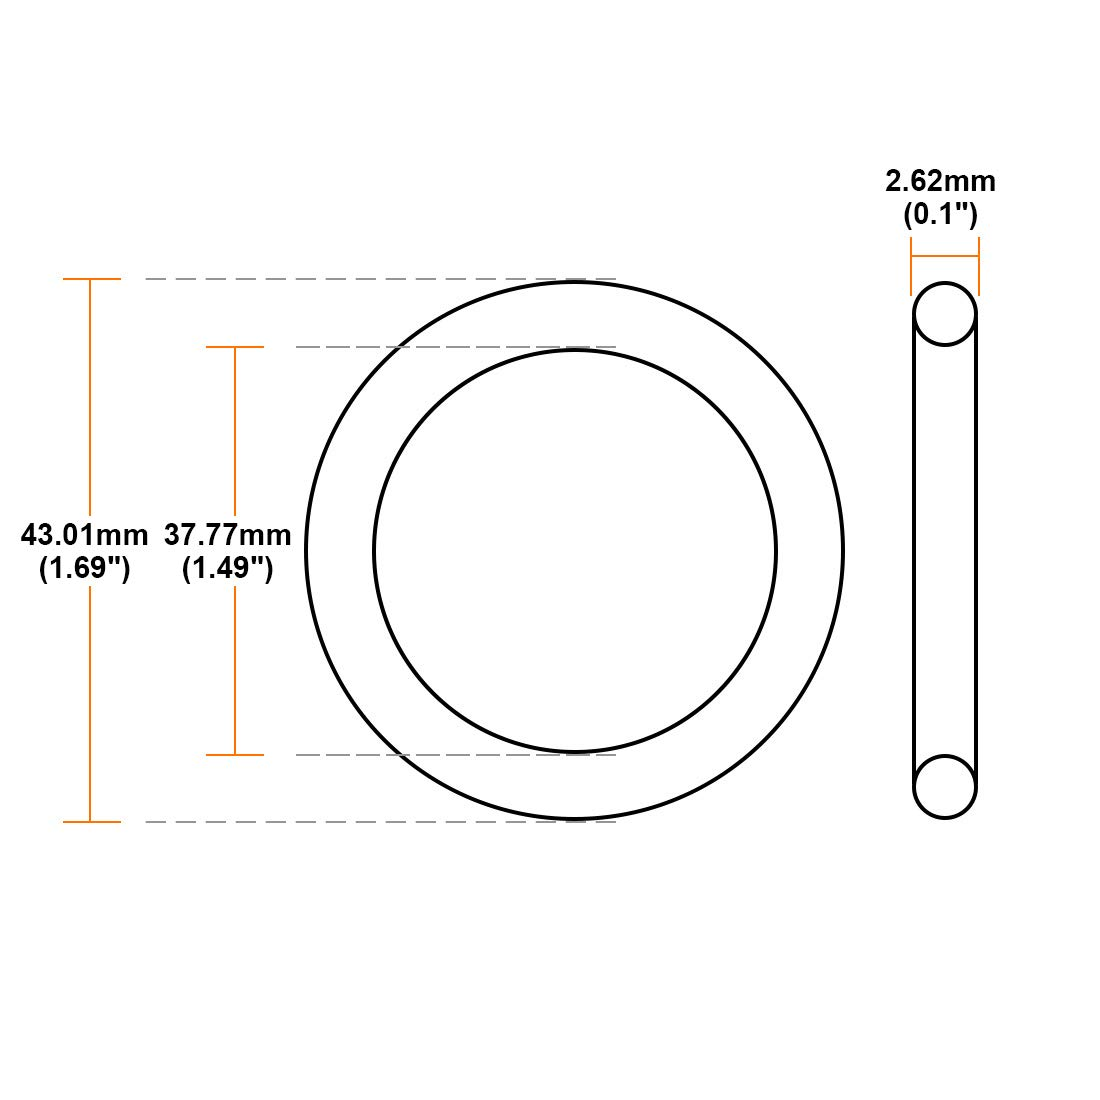 uxcell O-Rings Nitrile Rubber 28.24mm Inner Diameter 33.48mm OD 2.62mm Width Round Seal Gasket 10 Pcs